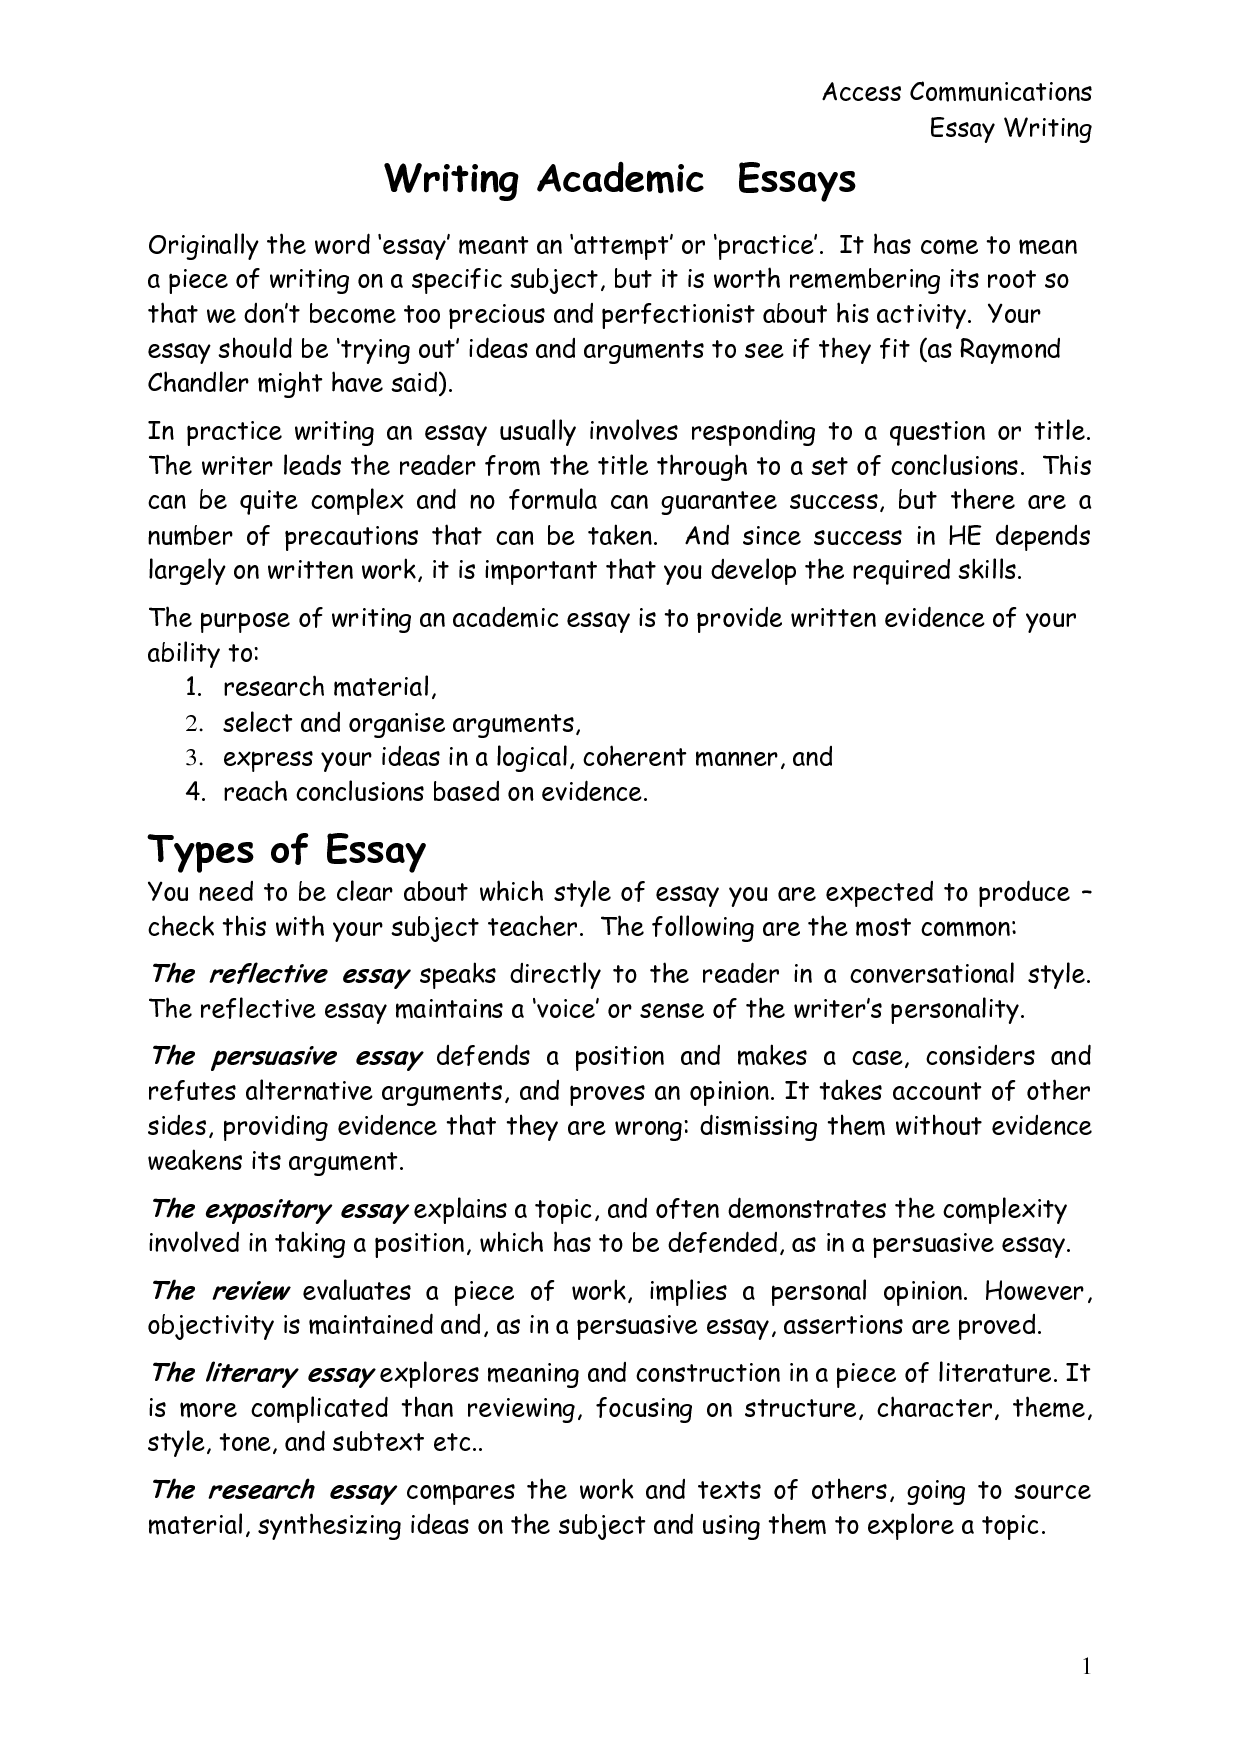 016 Reflective Essay On Academic Writings Beautiful Examples Sample Pdf About Writing English 101 Full